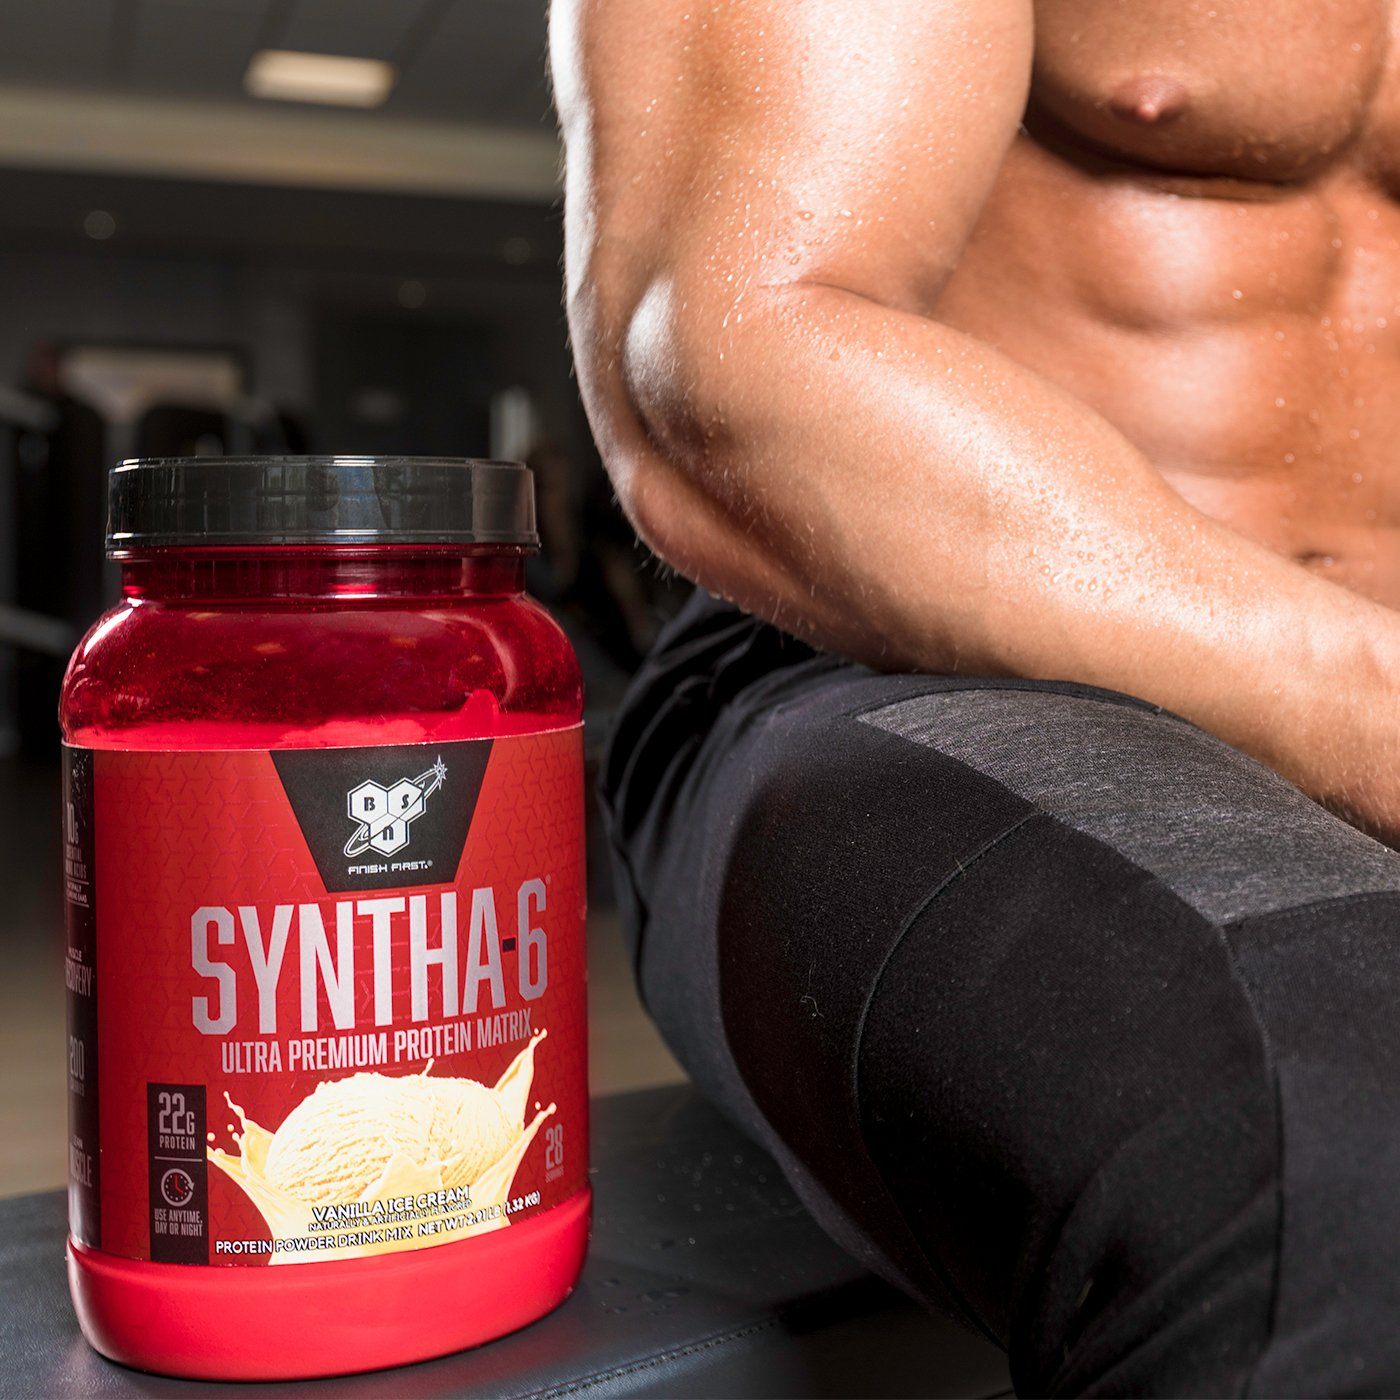 BSN SYNTHA-6 Whey Protein Powder, Micellar Casein, Milk Protein Isolate Powder, Chocolate Milkshake, 97 Servings (Package May Vary) by BSN (Image #8)